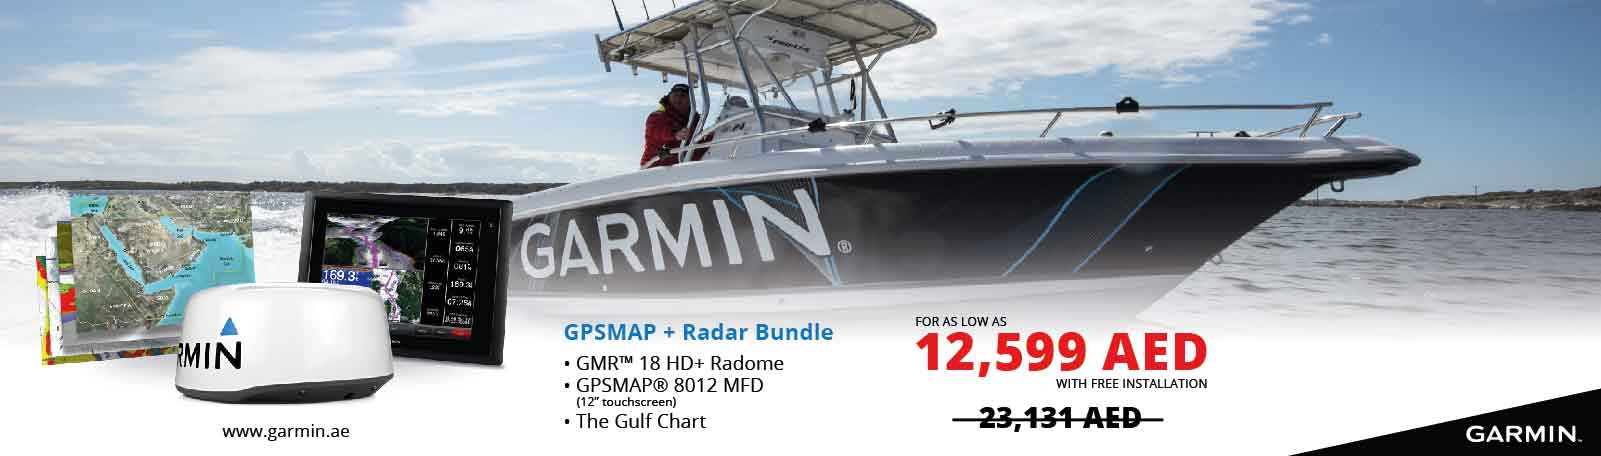 GPSMAP and Radar Bundle